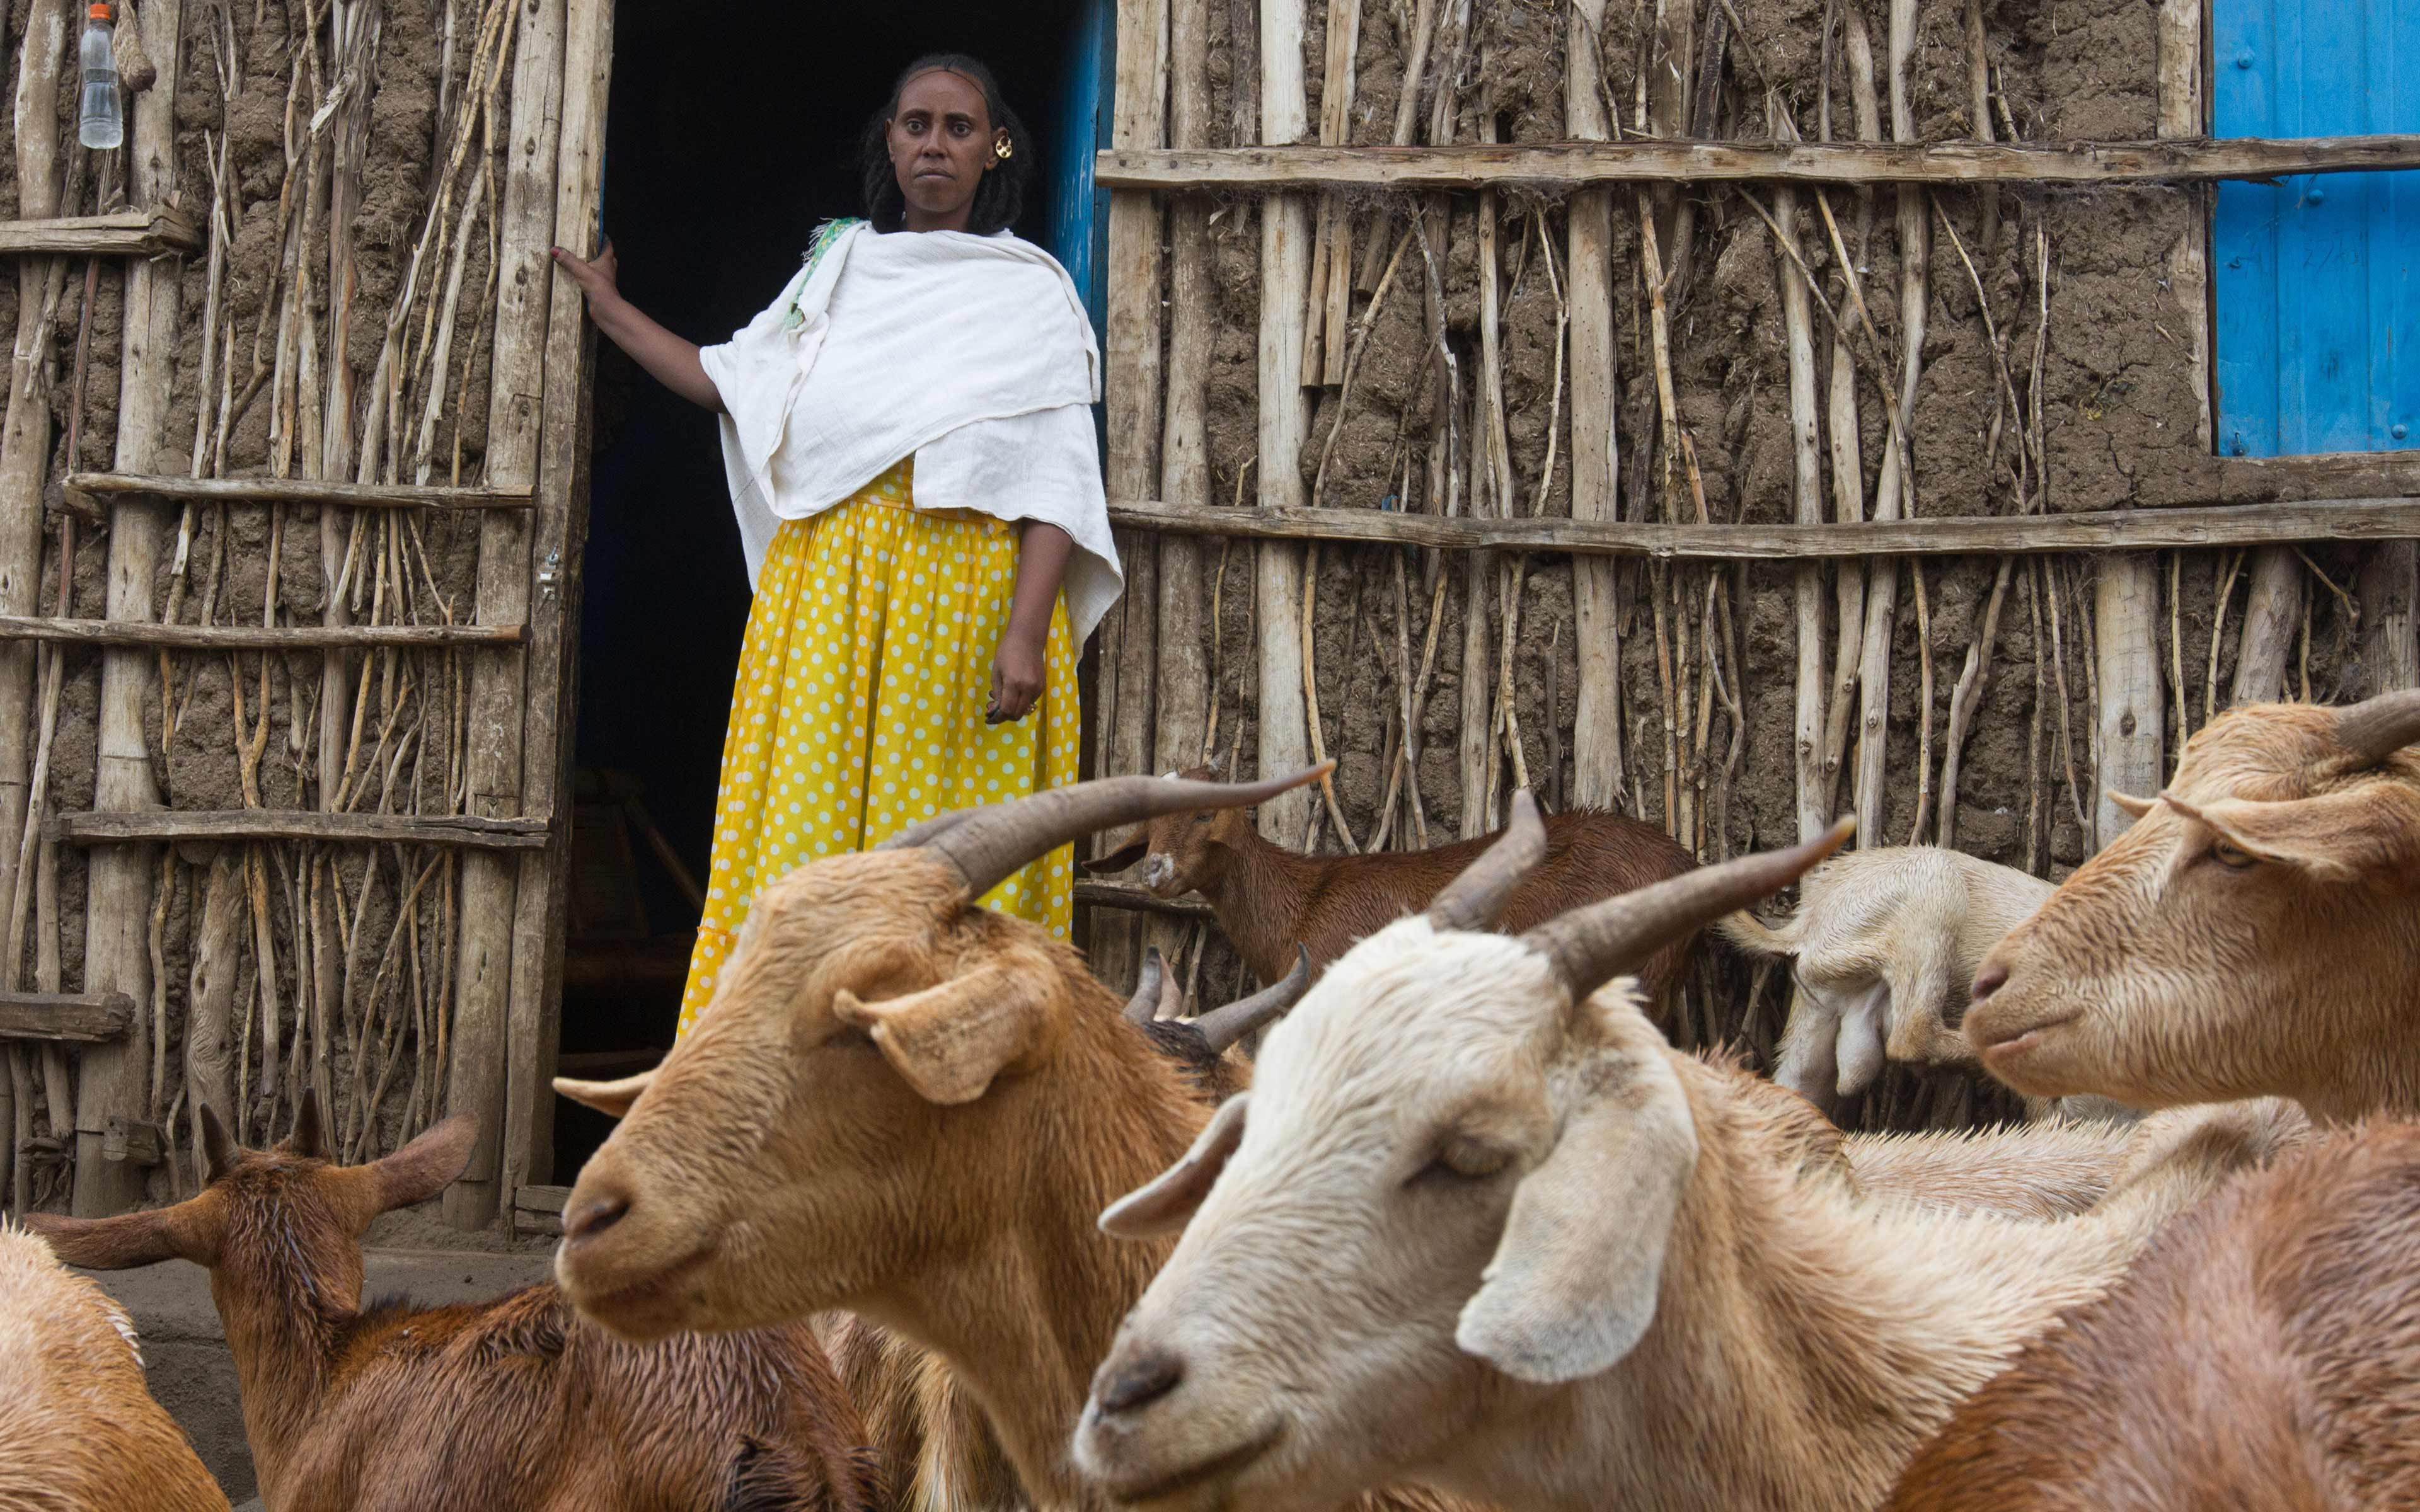 From the door of her house in the Tigray region of Ethiopia, Askal Teklay keeps an eye on the goats she is raising with the help of a loan she received through a rural resilience initiative known as R4. As the goats breed, she is able to sell them and use the money to support her family during a time of drought.